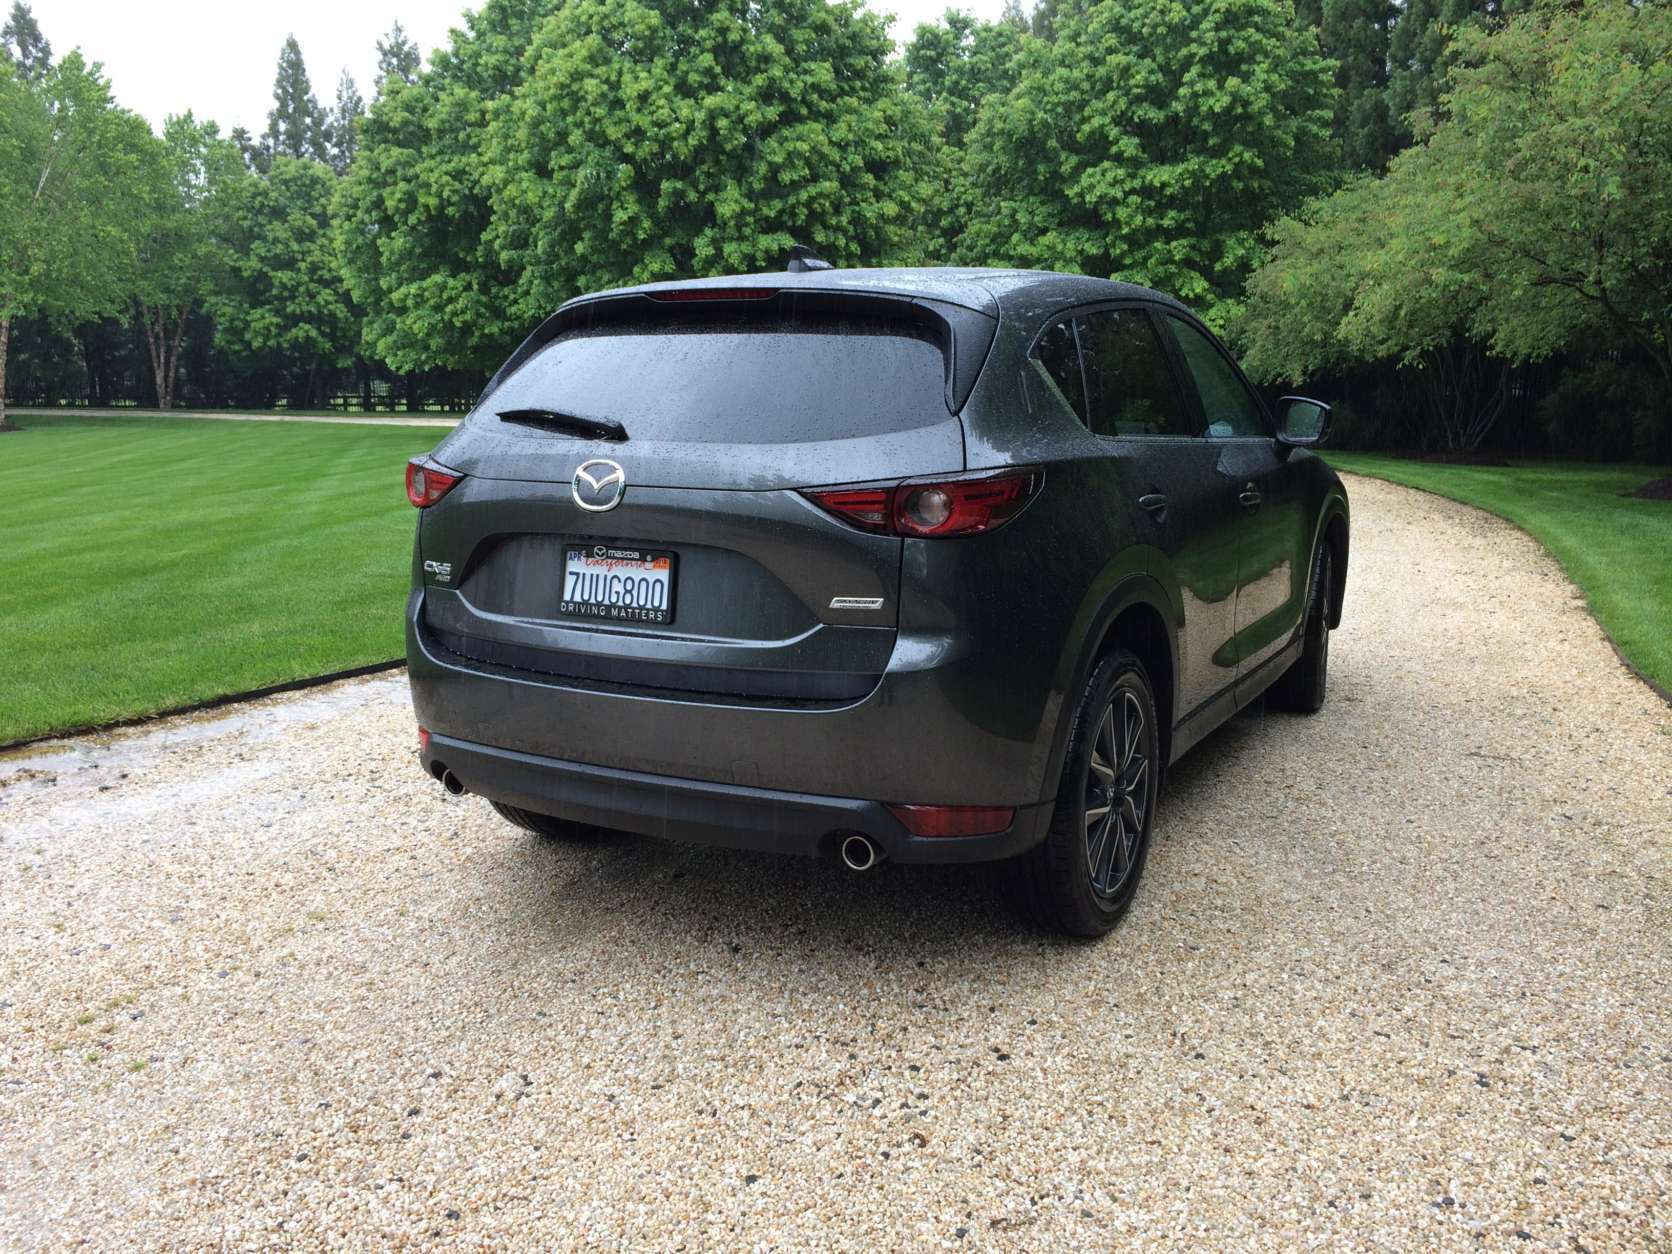 THe CX-5 hasn't lost any of the sporty handling. There is now a more composed ride on bumps, the harshness it had before is gone and the cabin is more hushed too. (WTOP/Mike Parris)